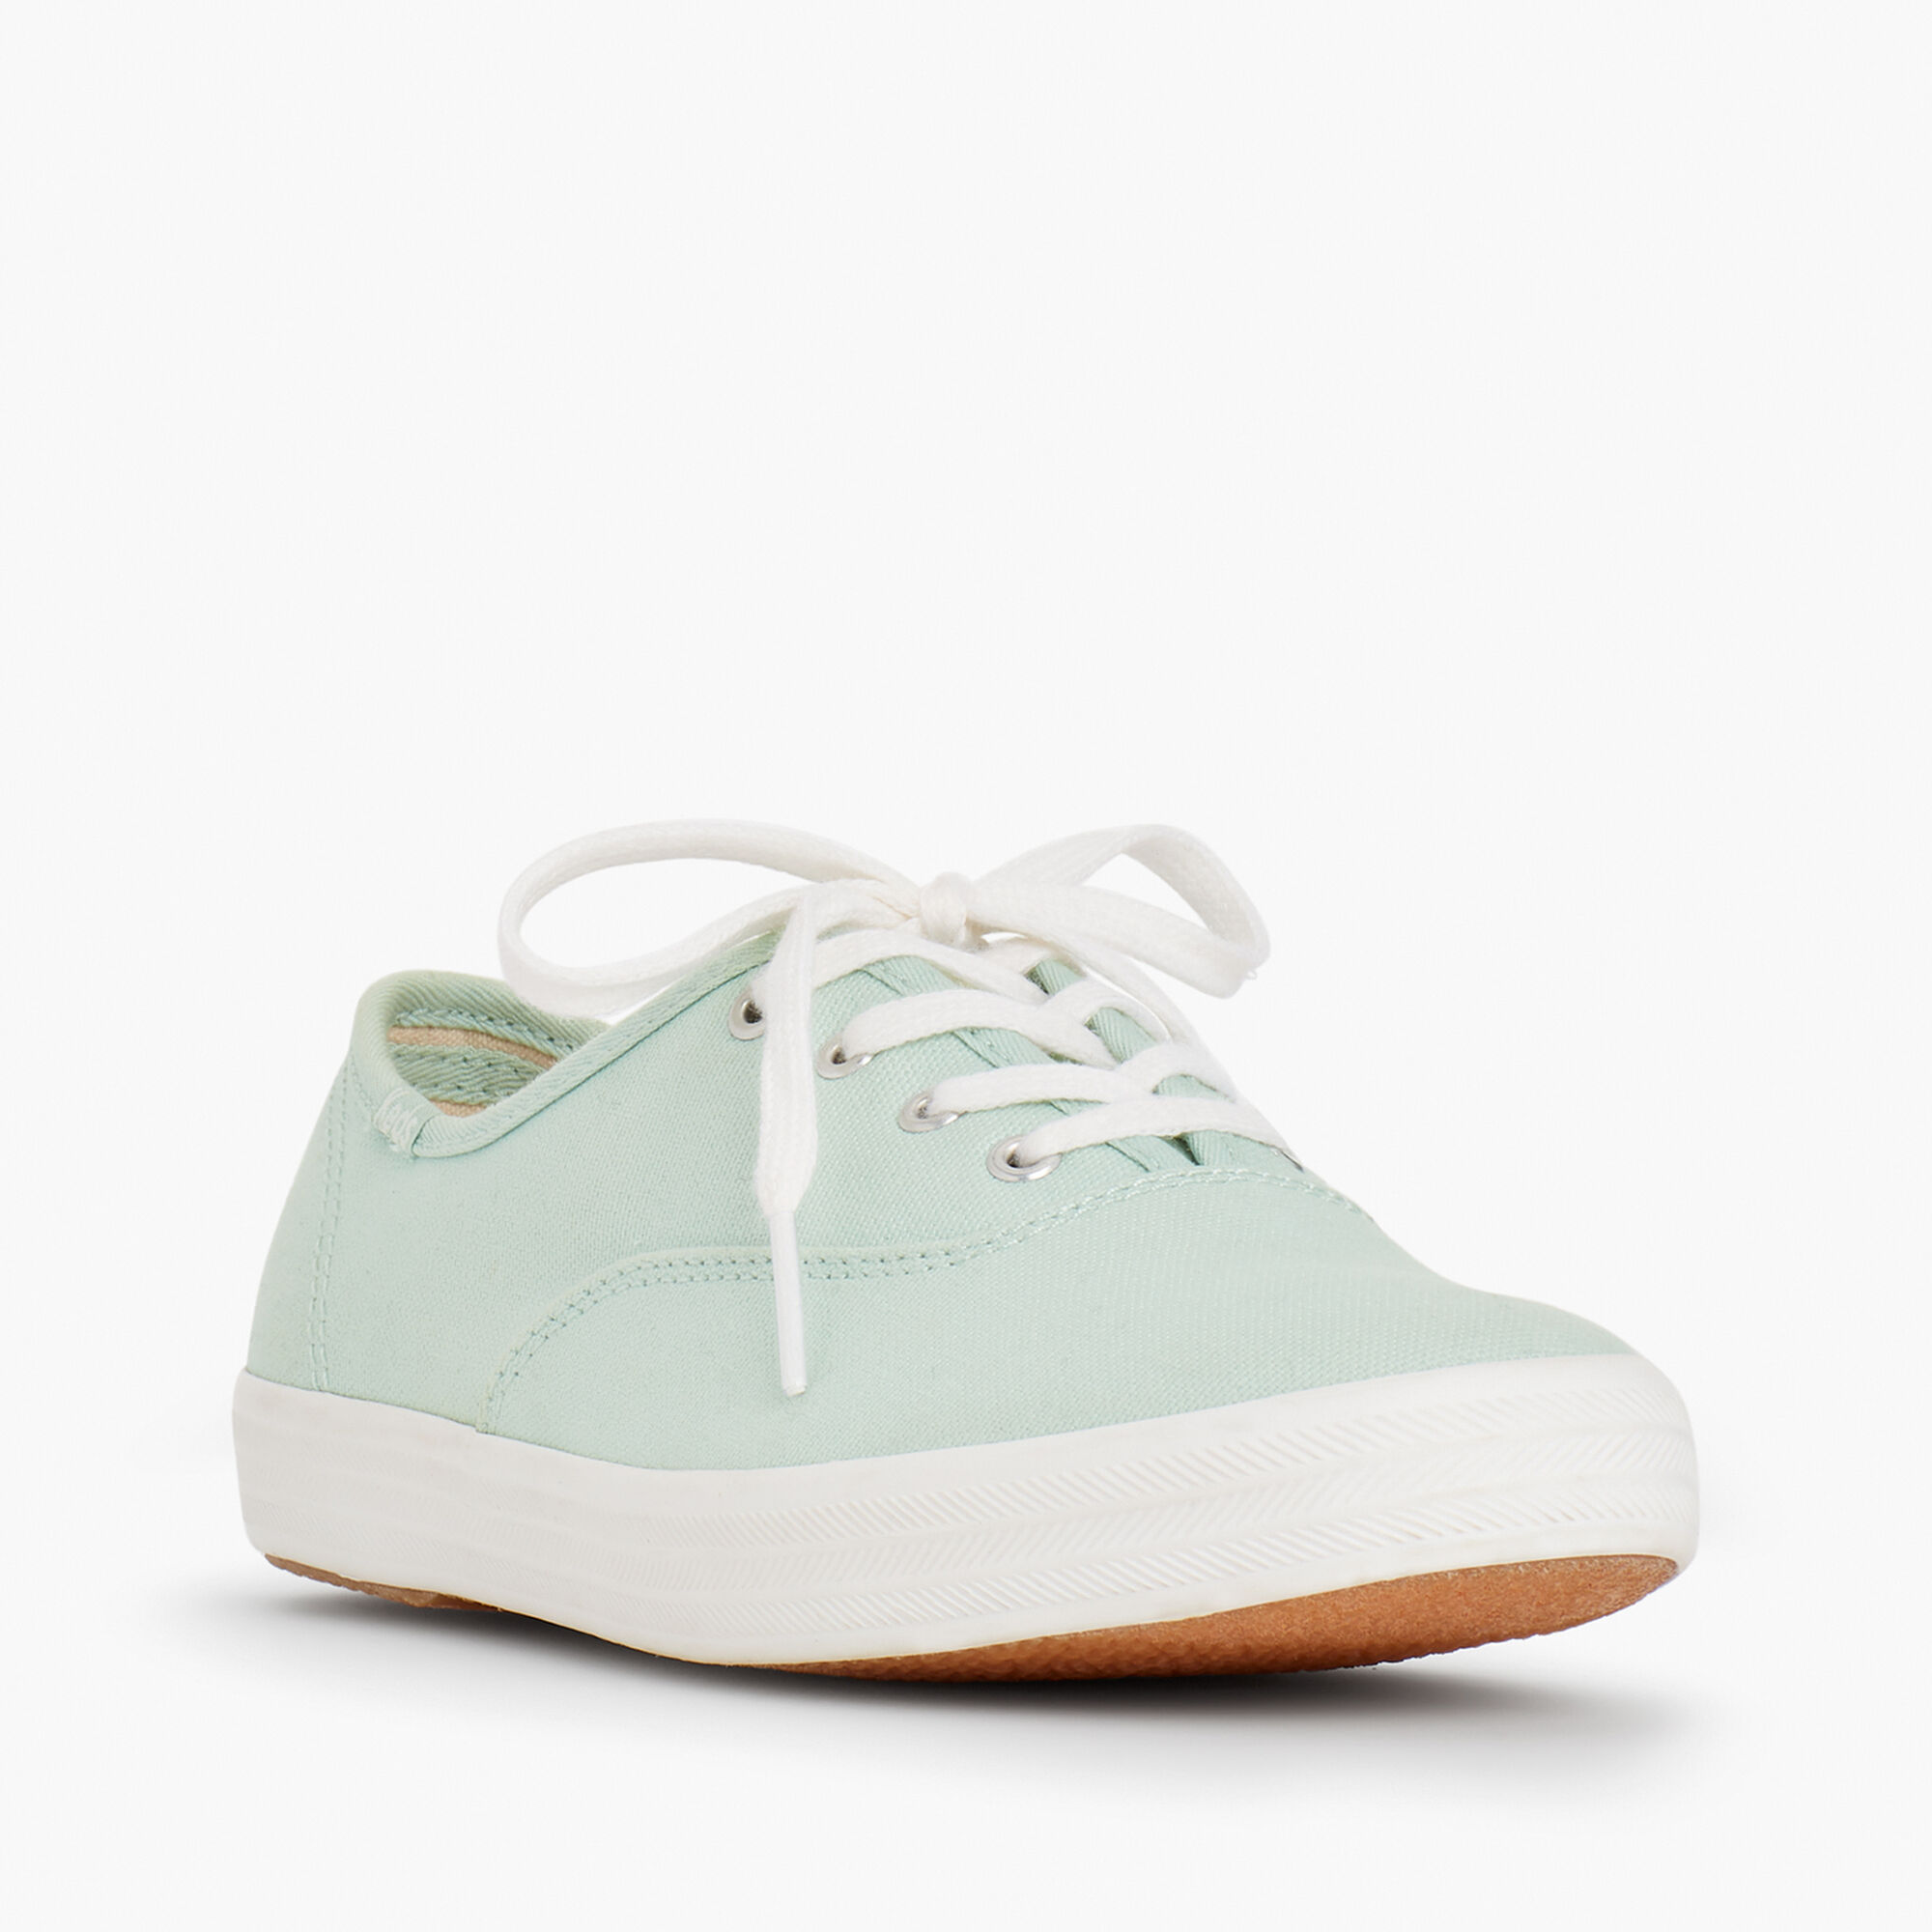 41f1840257d7 Keds  40 TM  41  Champion Sneakers - Seasonal Solids Opens a New Window.